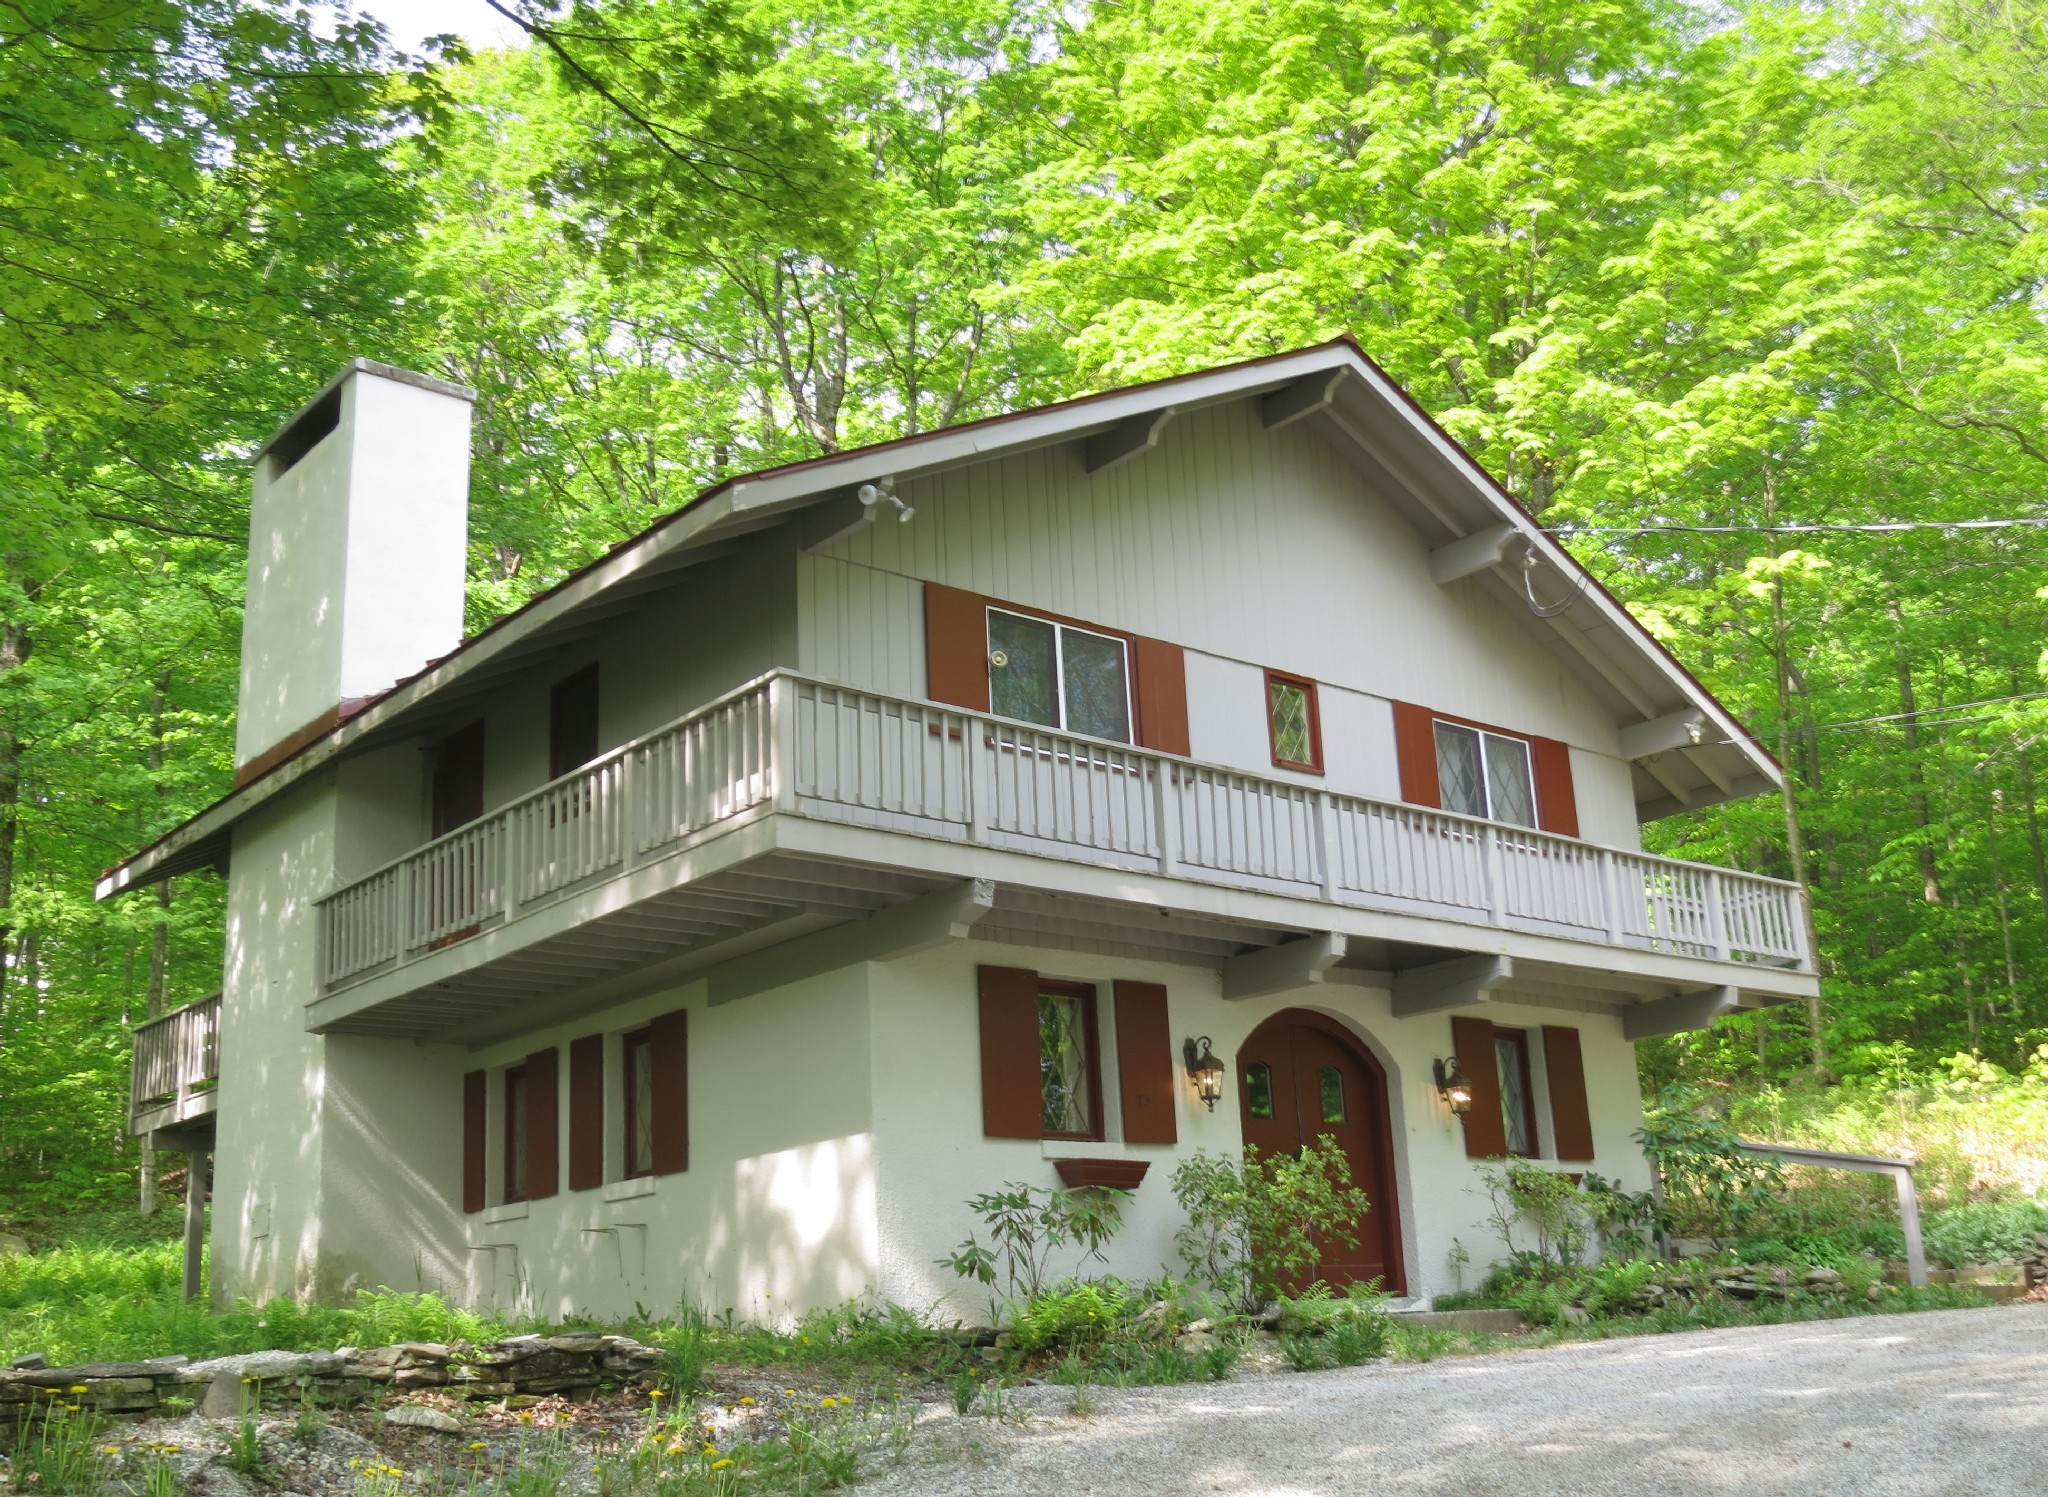 Single Family Home for Sale at Appealing & Adaptable Resort Chalet 5 Roundtree Rd Winhall, Vermont, 05340 United States